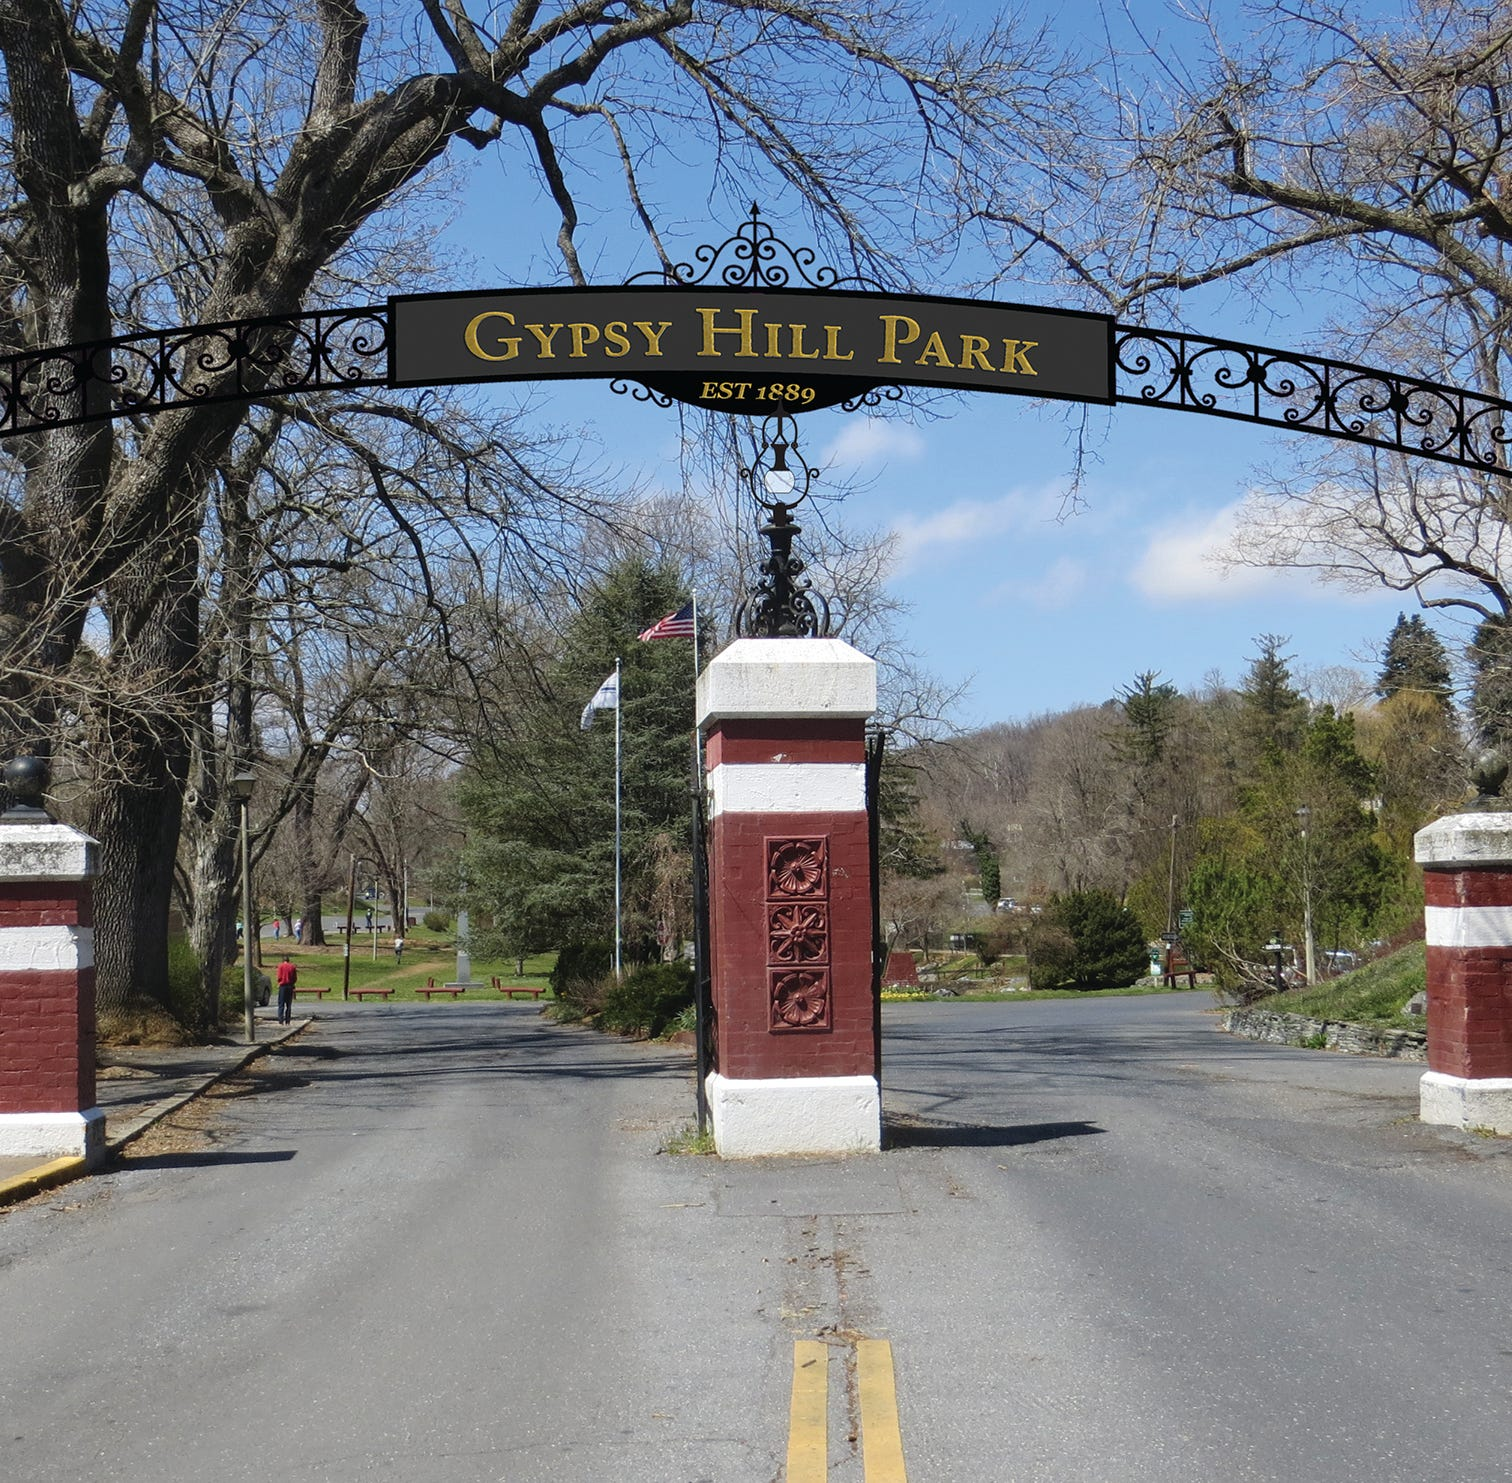 City nixes Gypsy Hill Park recycling bins to save money as recycling costs climb